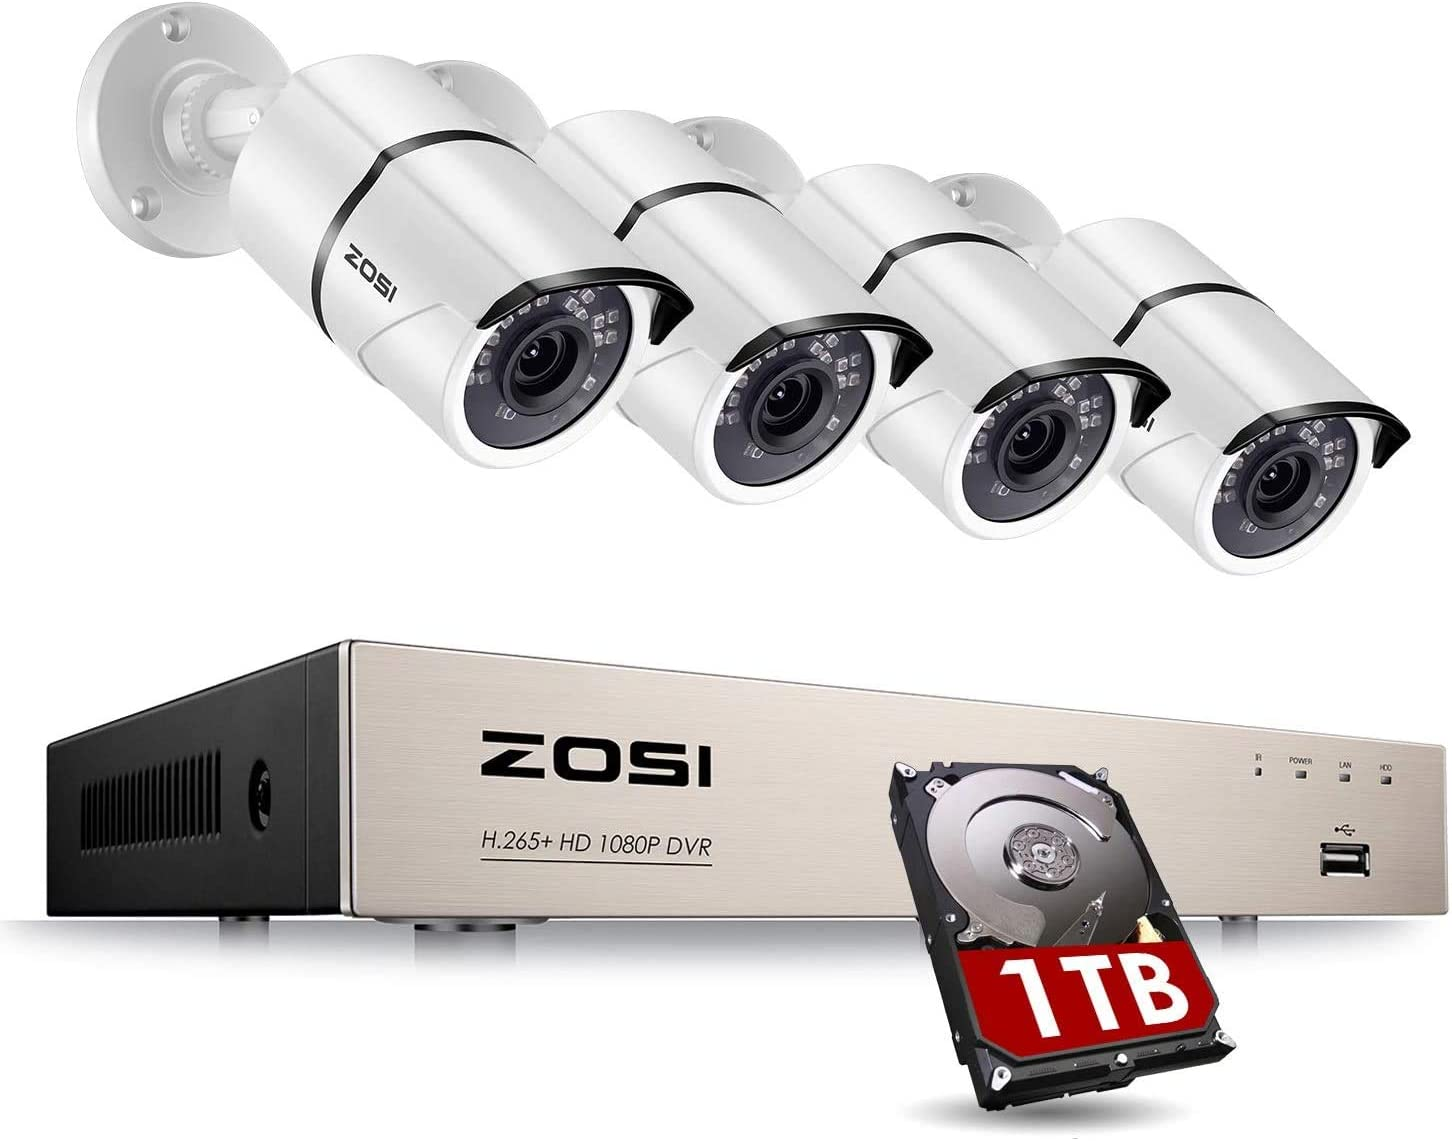 ZOSI 8CH Full True 1080P Video Security DVR 4X 1080P HD Weatherproof Surveillance Camera System 1TB HDD (100ft Night Vision, Motion Alert, Smartphone& PC Easy Remote Access) (Renewed)